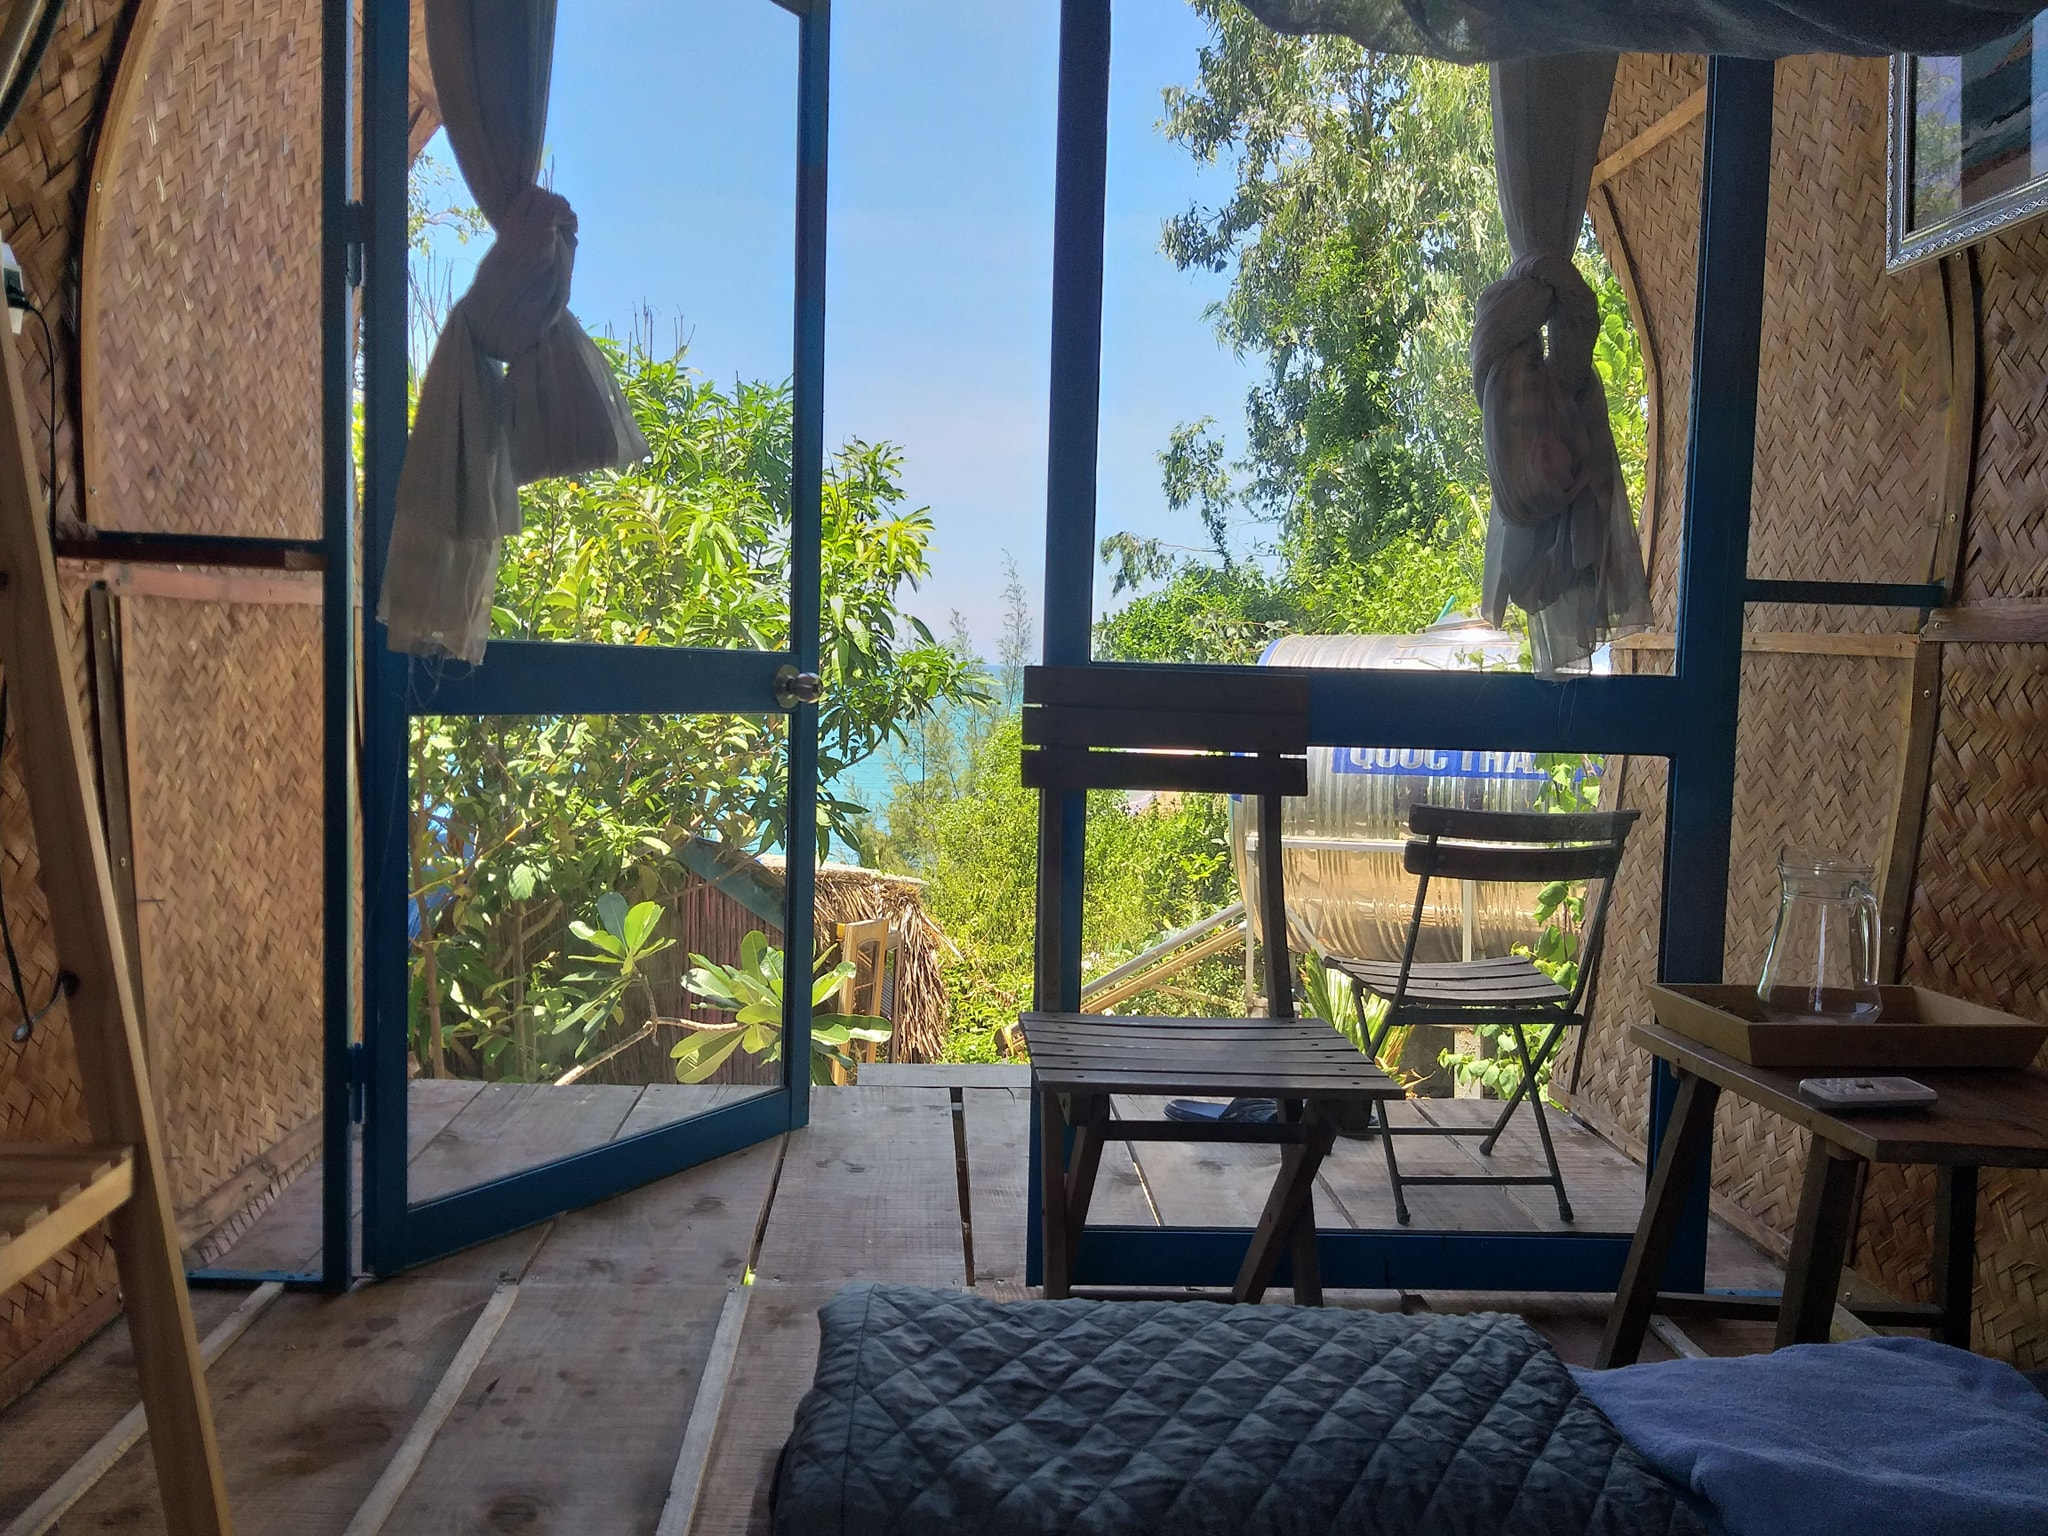 Bedroom with seaview at the homestay. Photo: Banana Sea Homestay.